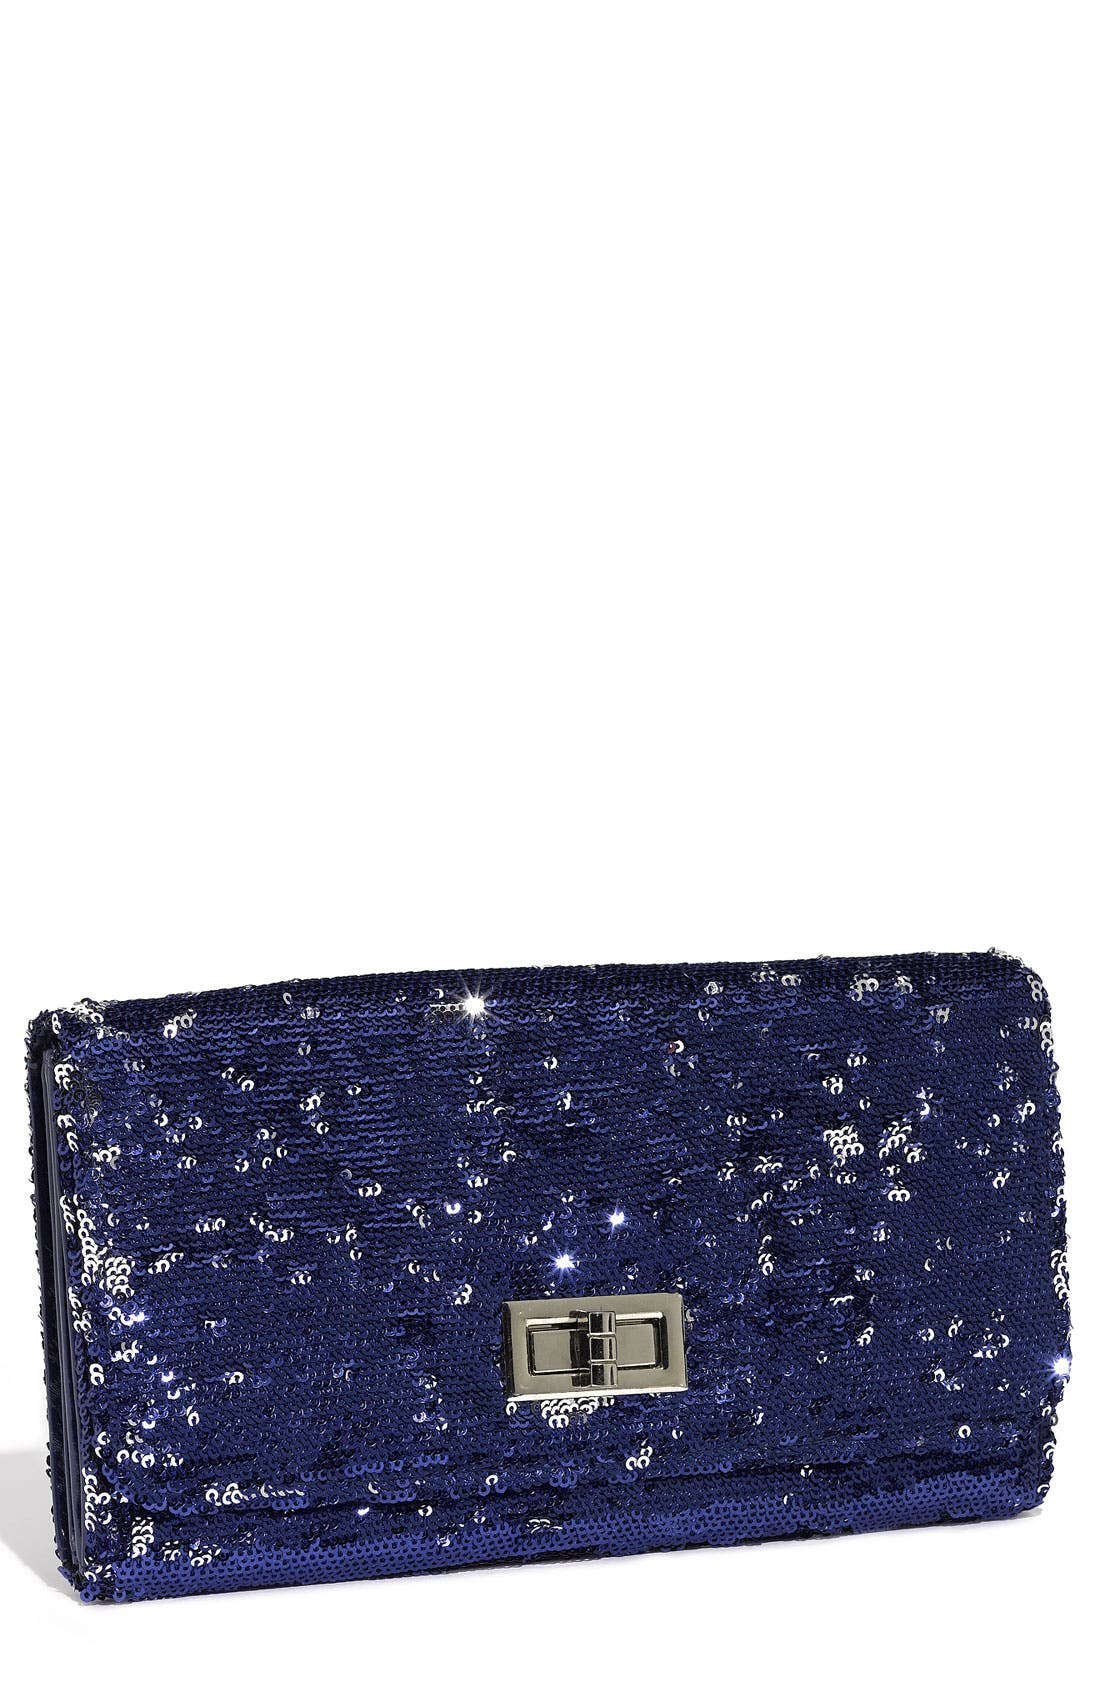 Alternate Image 1 Selected - Top Choice Sequin Clutch